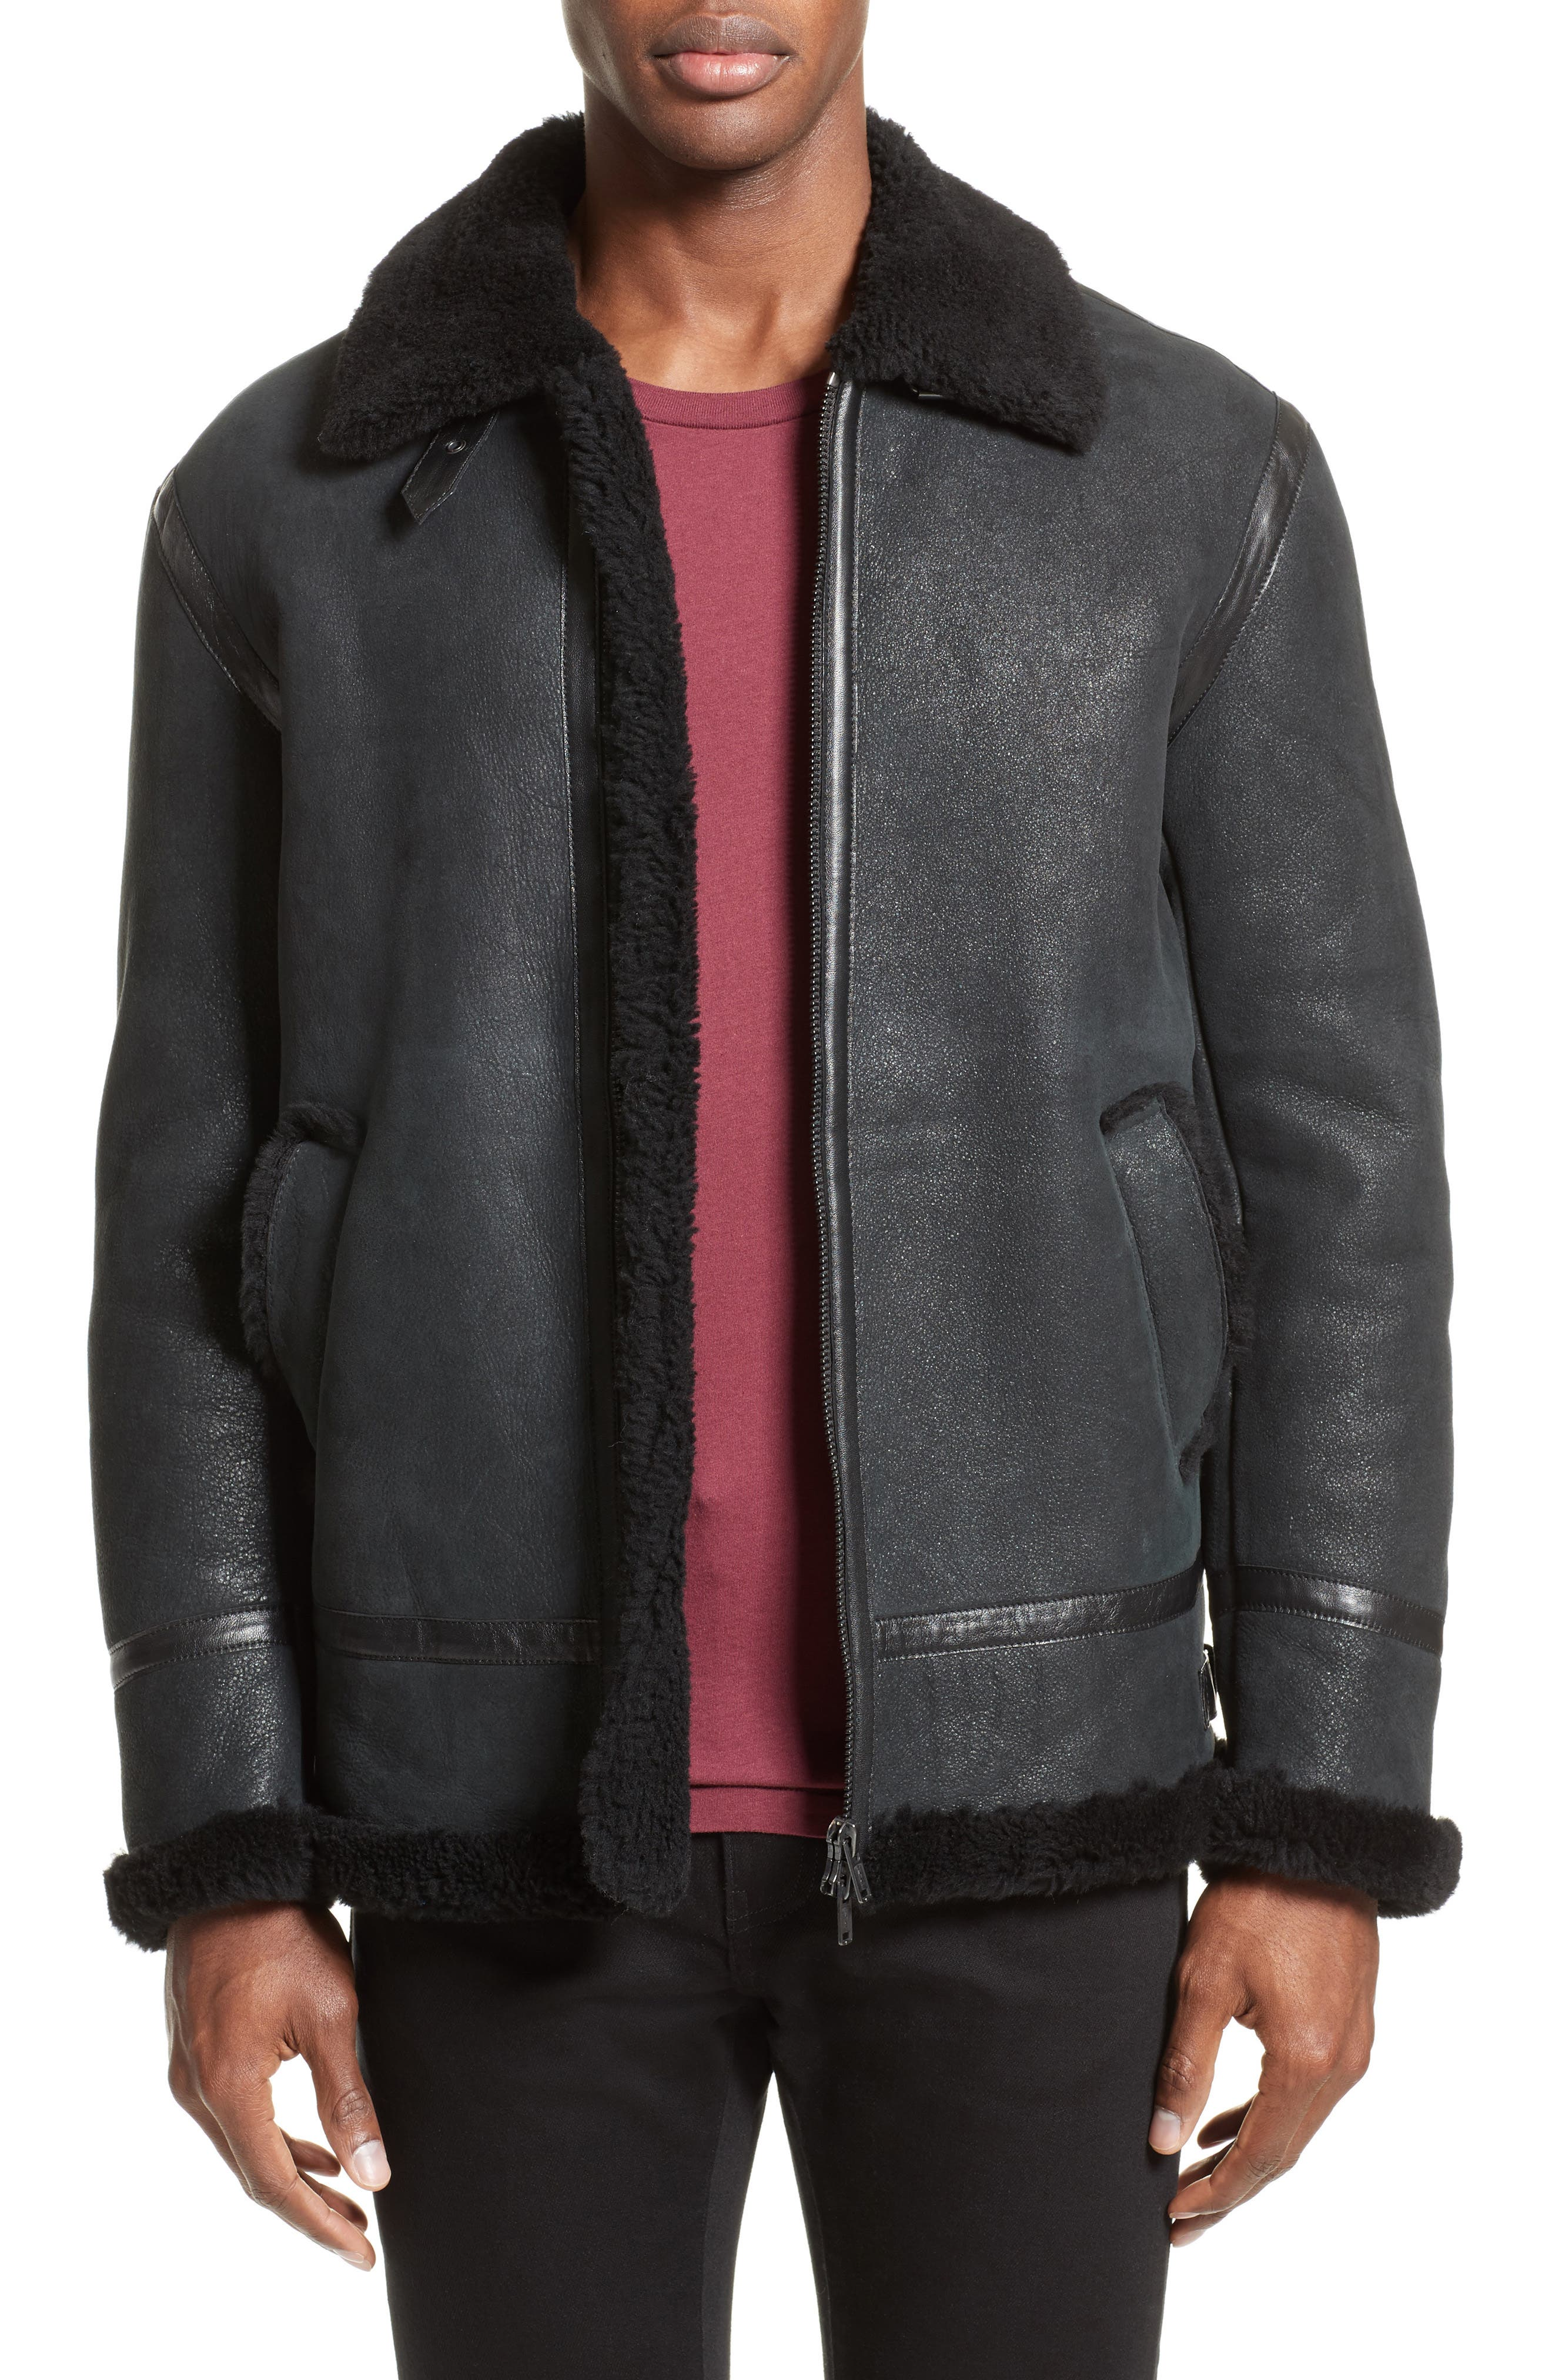 Lamb Shearling Jacket,                         Main,                         color, 001